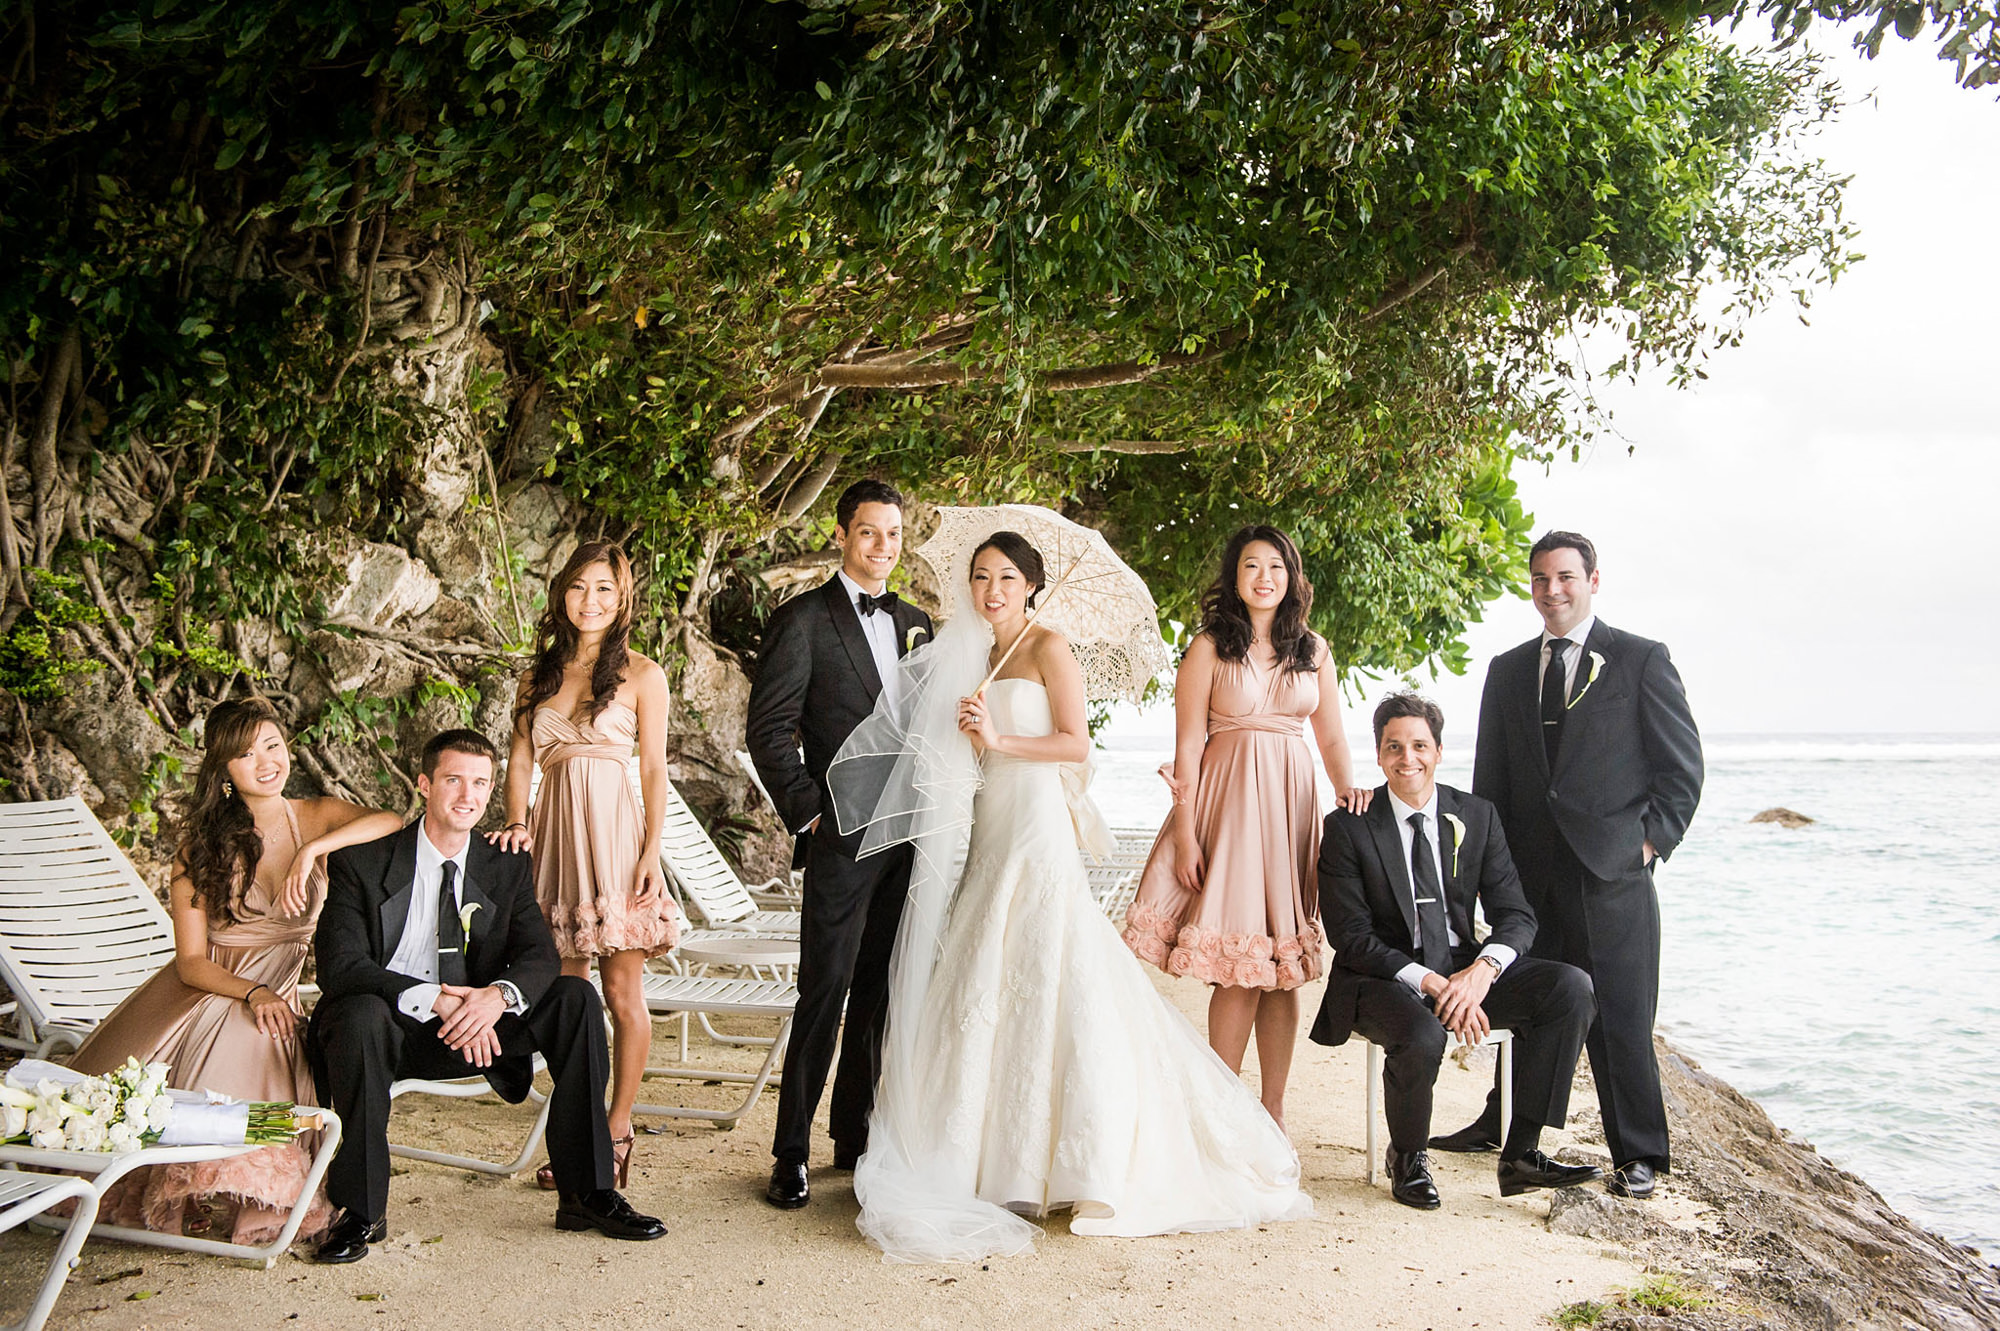 Wedding party bride with lace umbrella and pink bridesmaid dresses -  photo by Marcus Bell